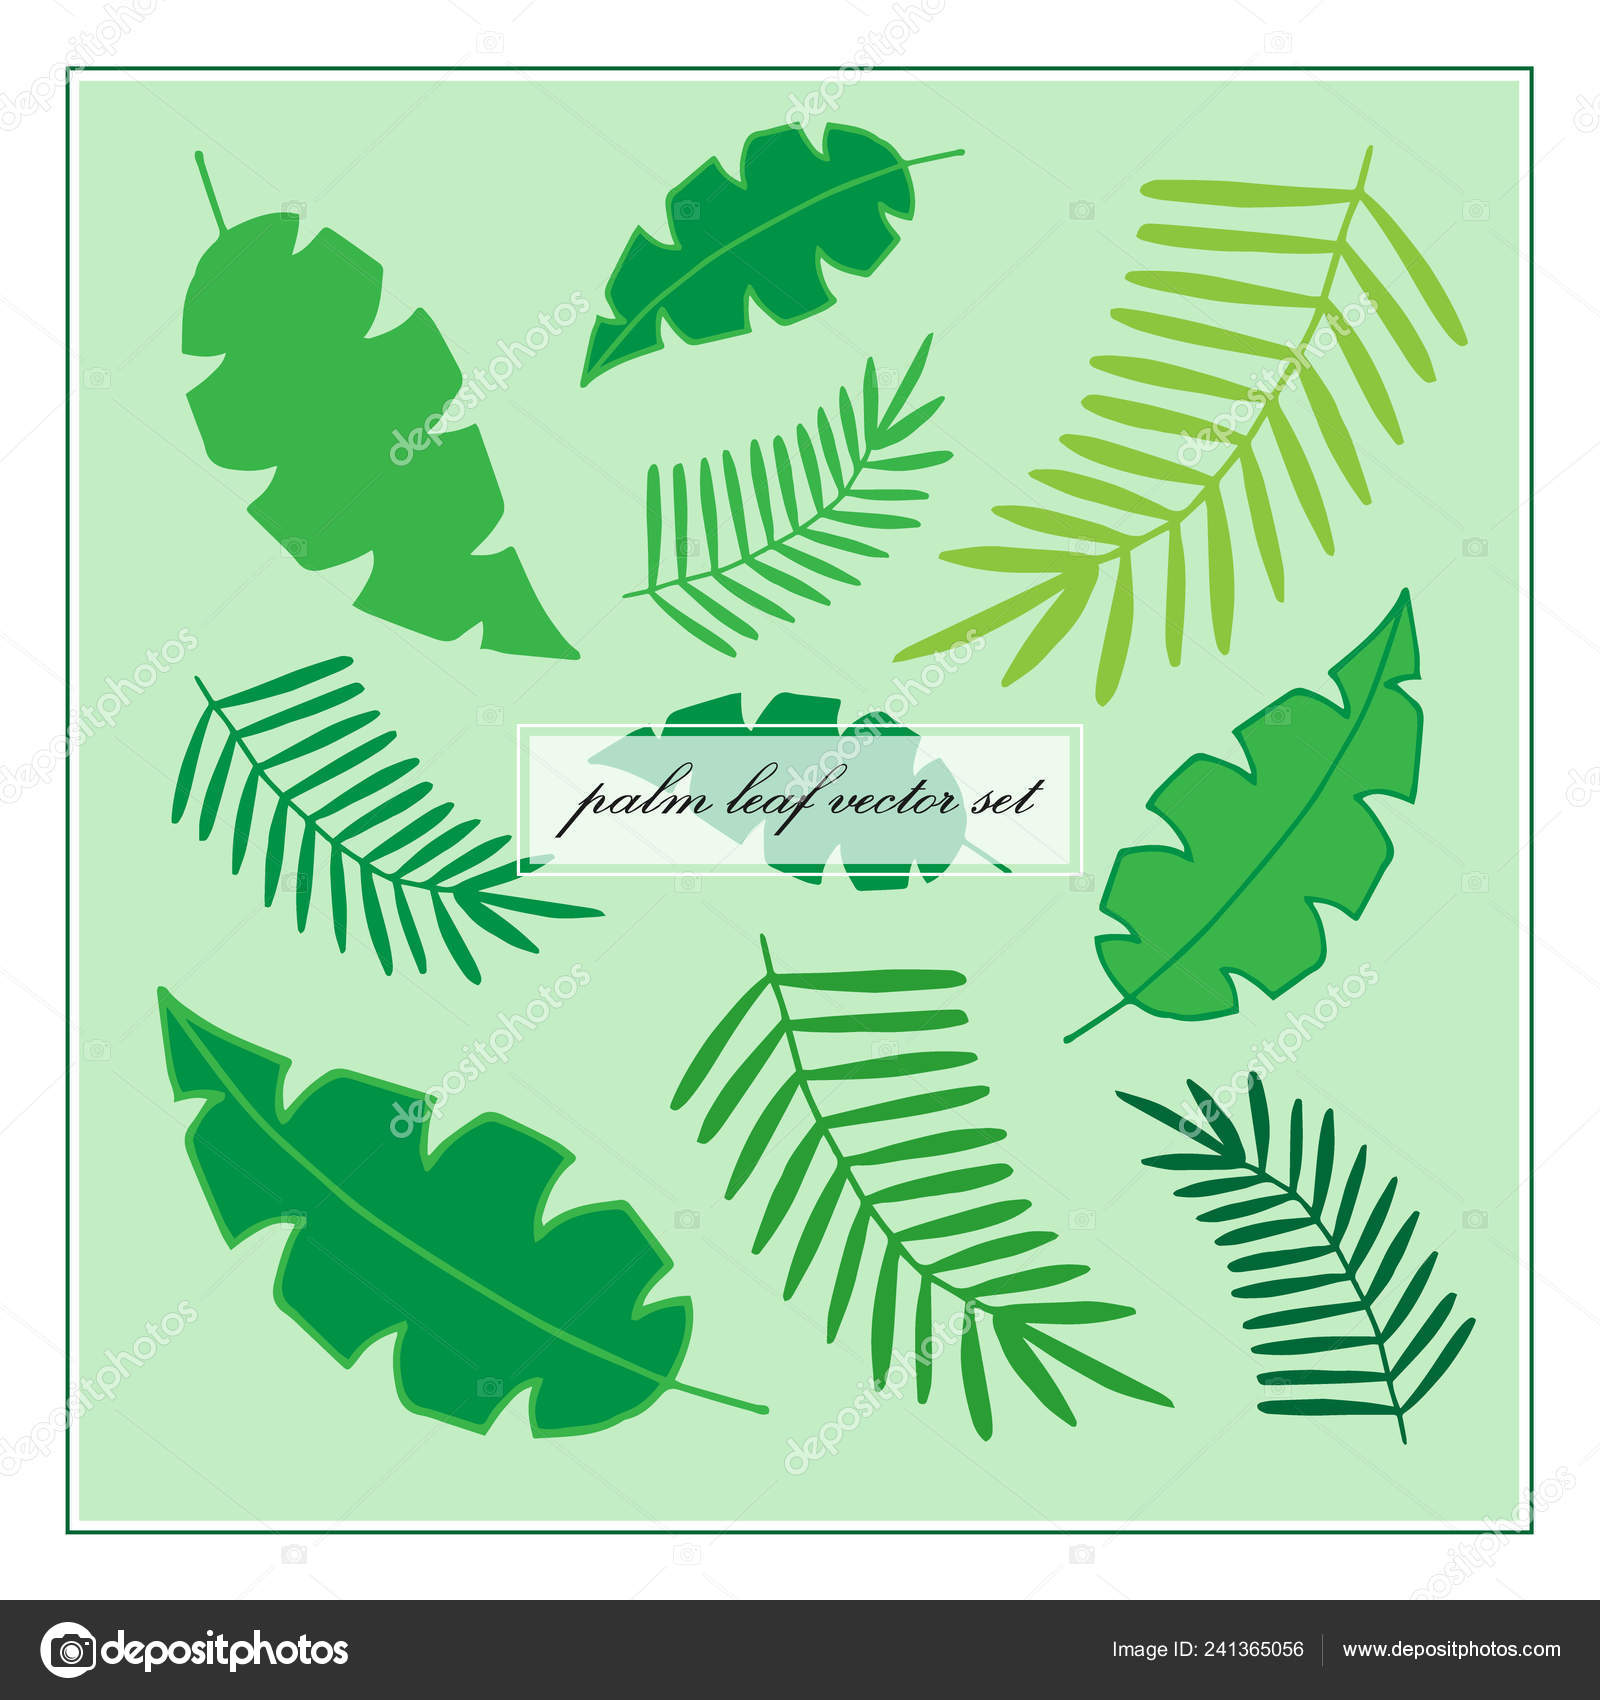 Palm Leaves Vector Set Tropical Palm Leaf Icon Vector Illustration Stock Vector C Kiki Vagnerova Gmail Com 241365056 Choose from over a million free vectors, clipart graphics, vector art images, design templates, and illustrations created by artists worldwide! palm leaves vector set tropical palm leaf icon vector illustration stock vector c kiki vagnerova gmail com 241365056